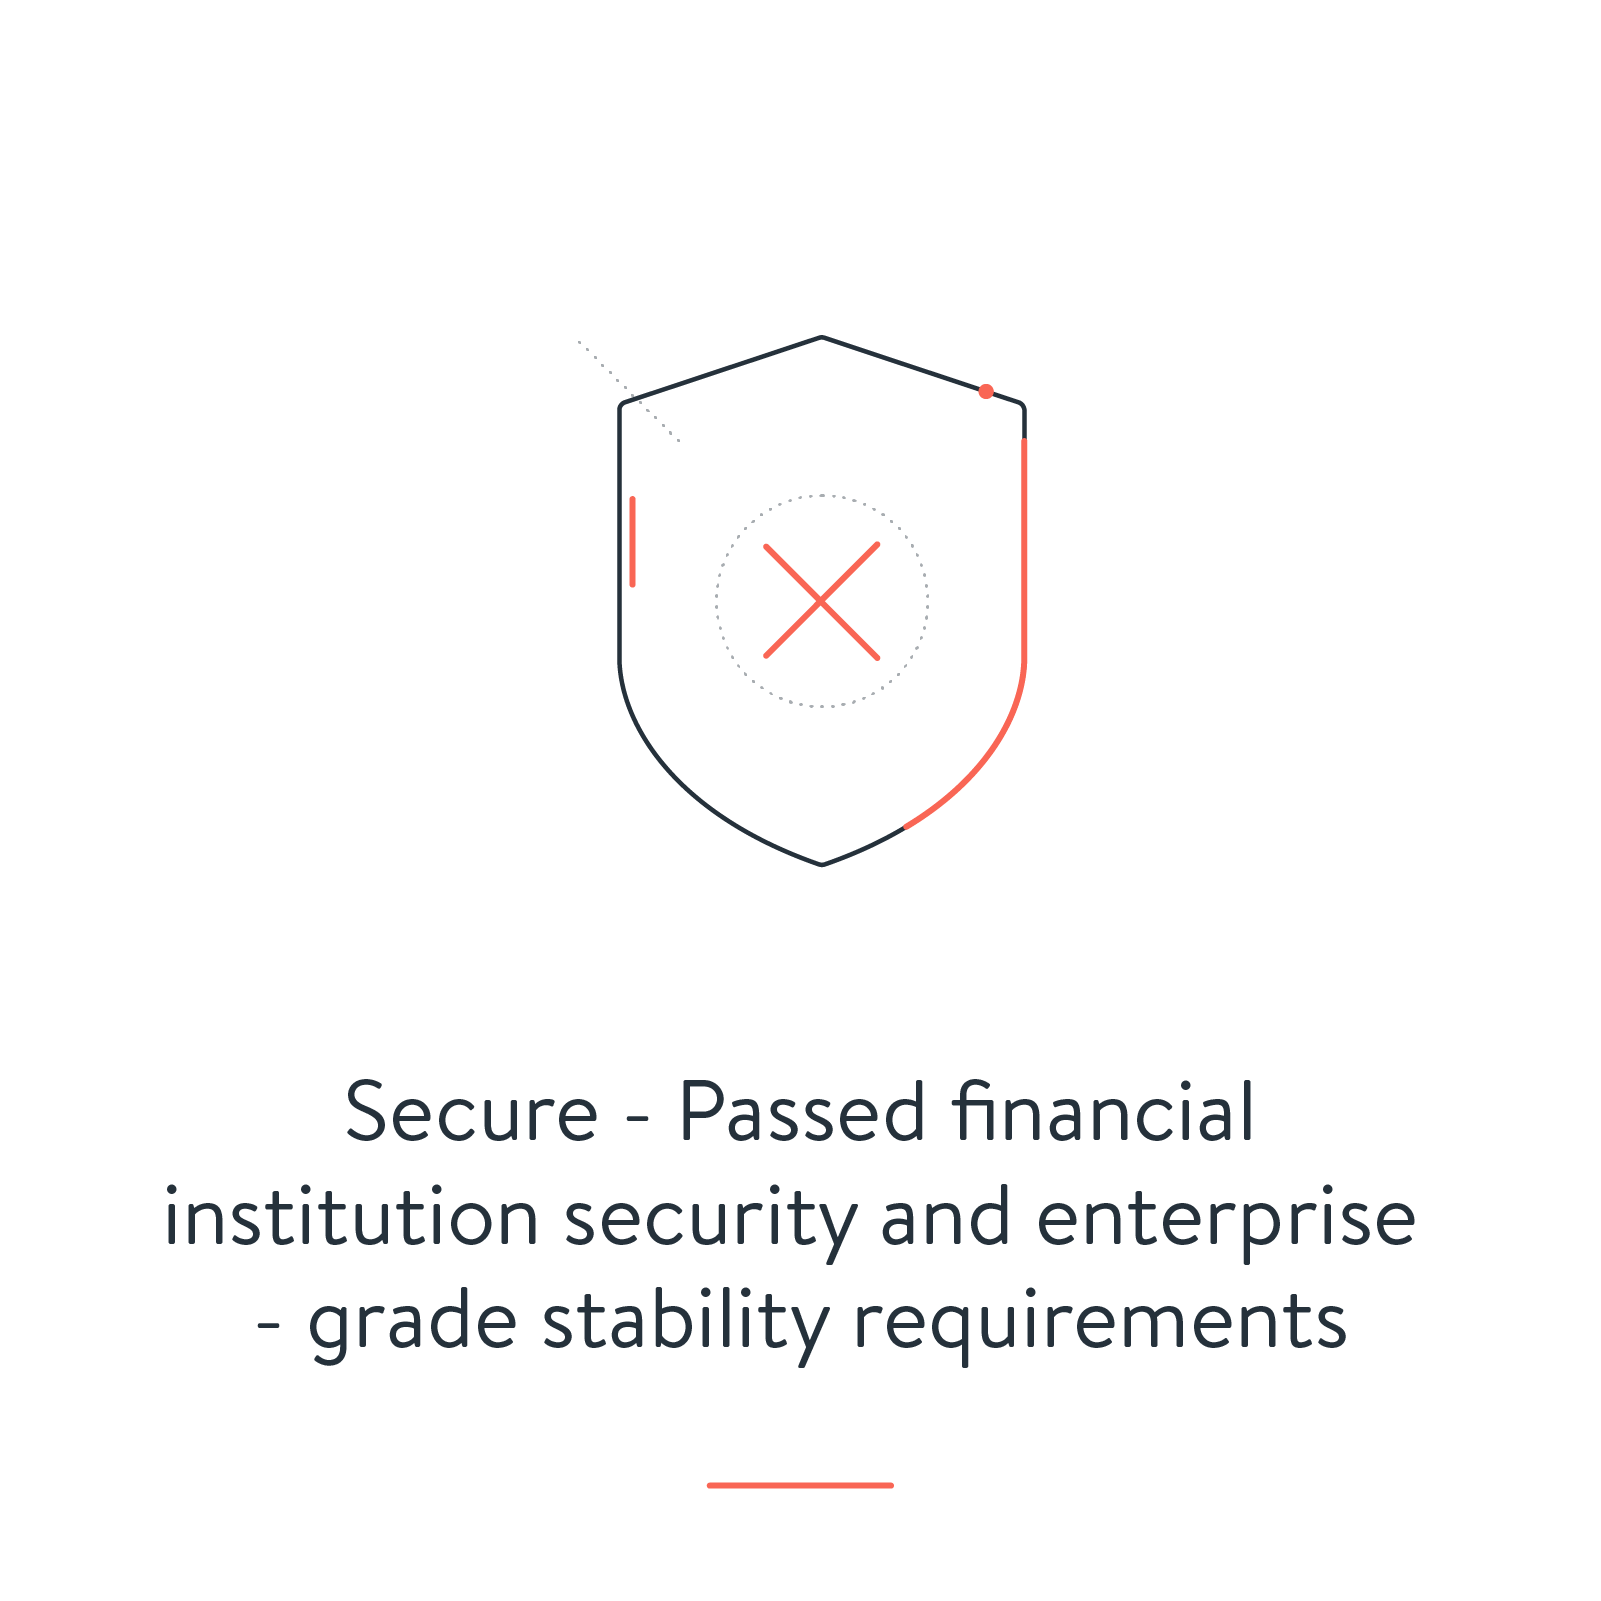 Secure - Passed financial institution security & enterprise grade stability requirements